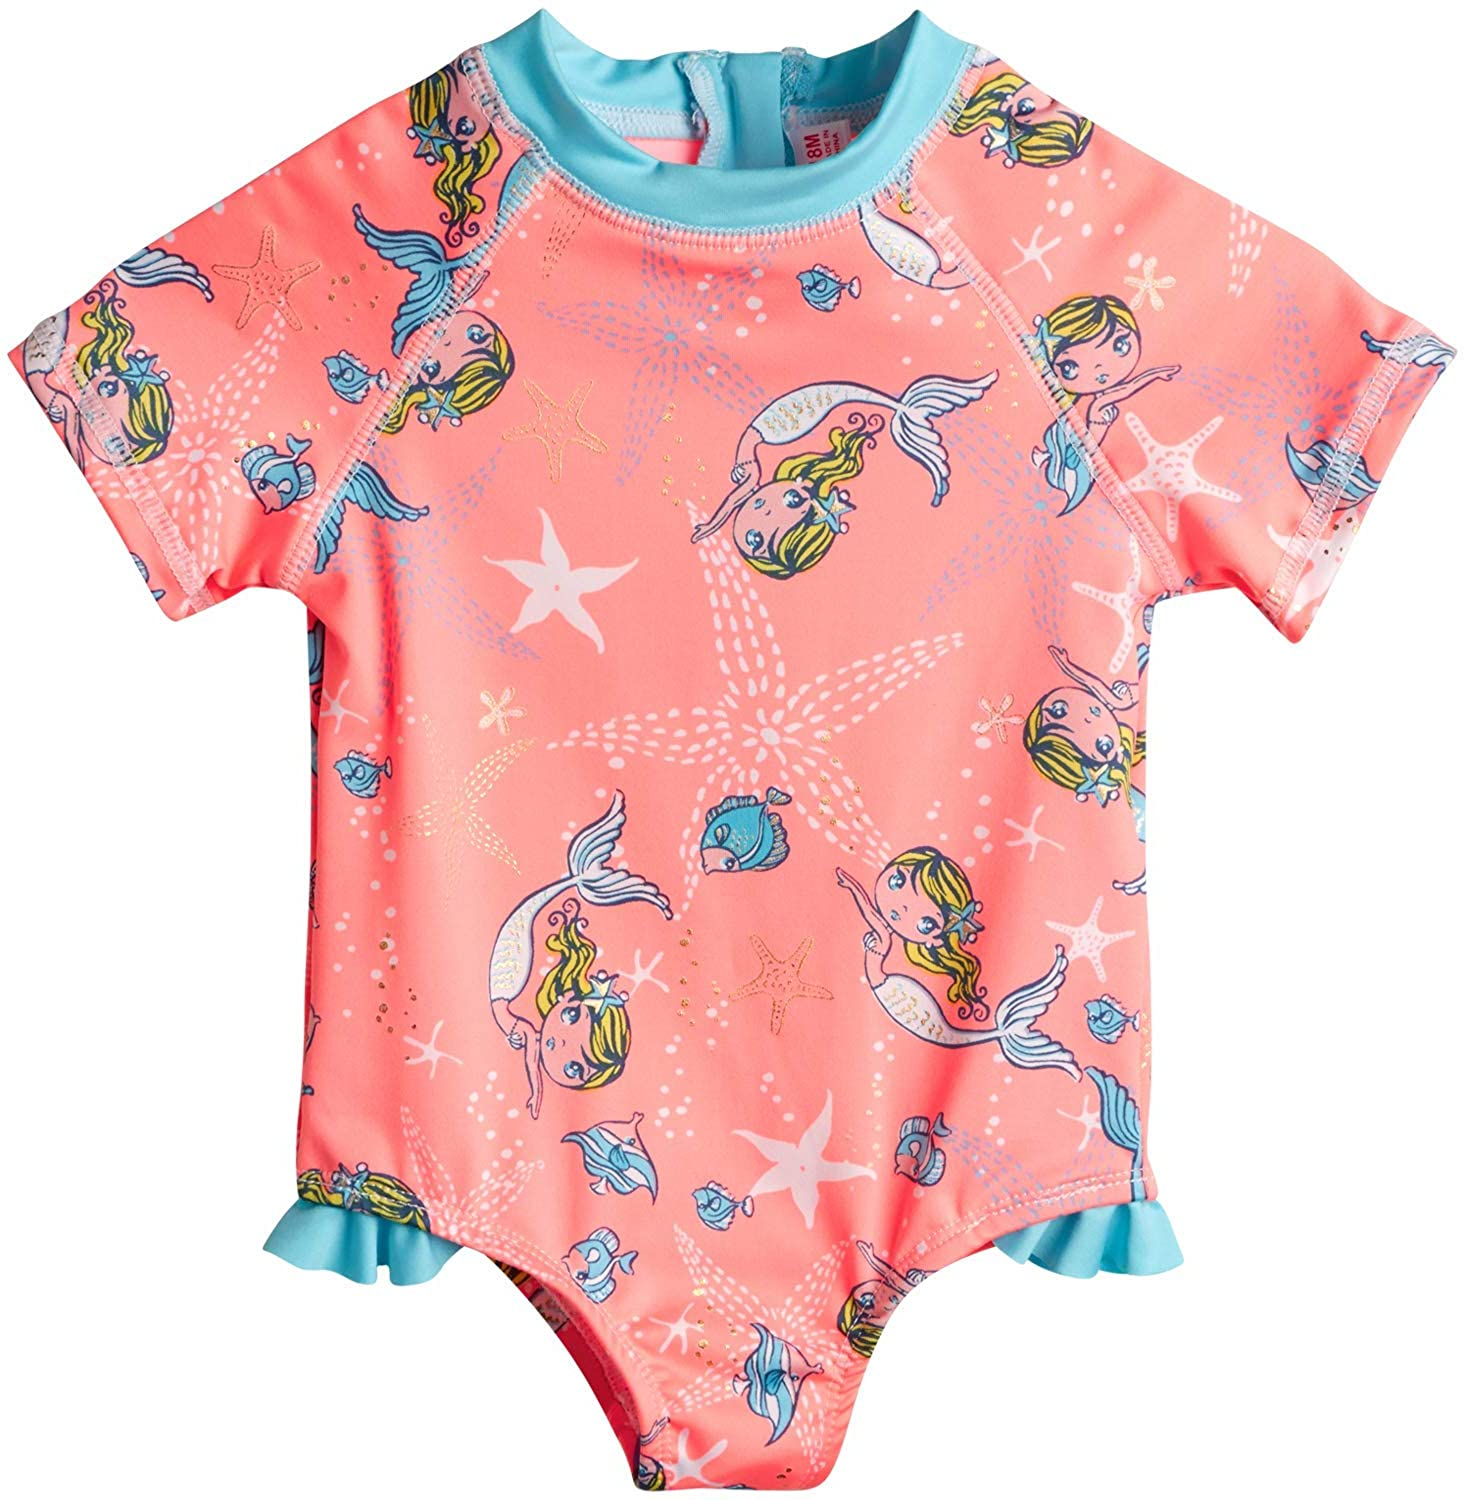 Wippette Baby Girls Swimwear - One Piece Rash Guard Swimsuit with Sun Protection UPF 50+ (Newborn/Infant)